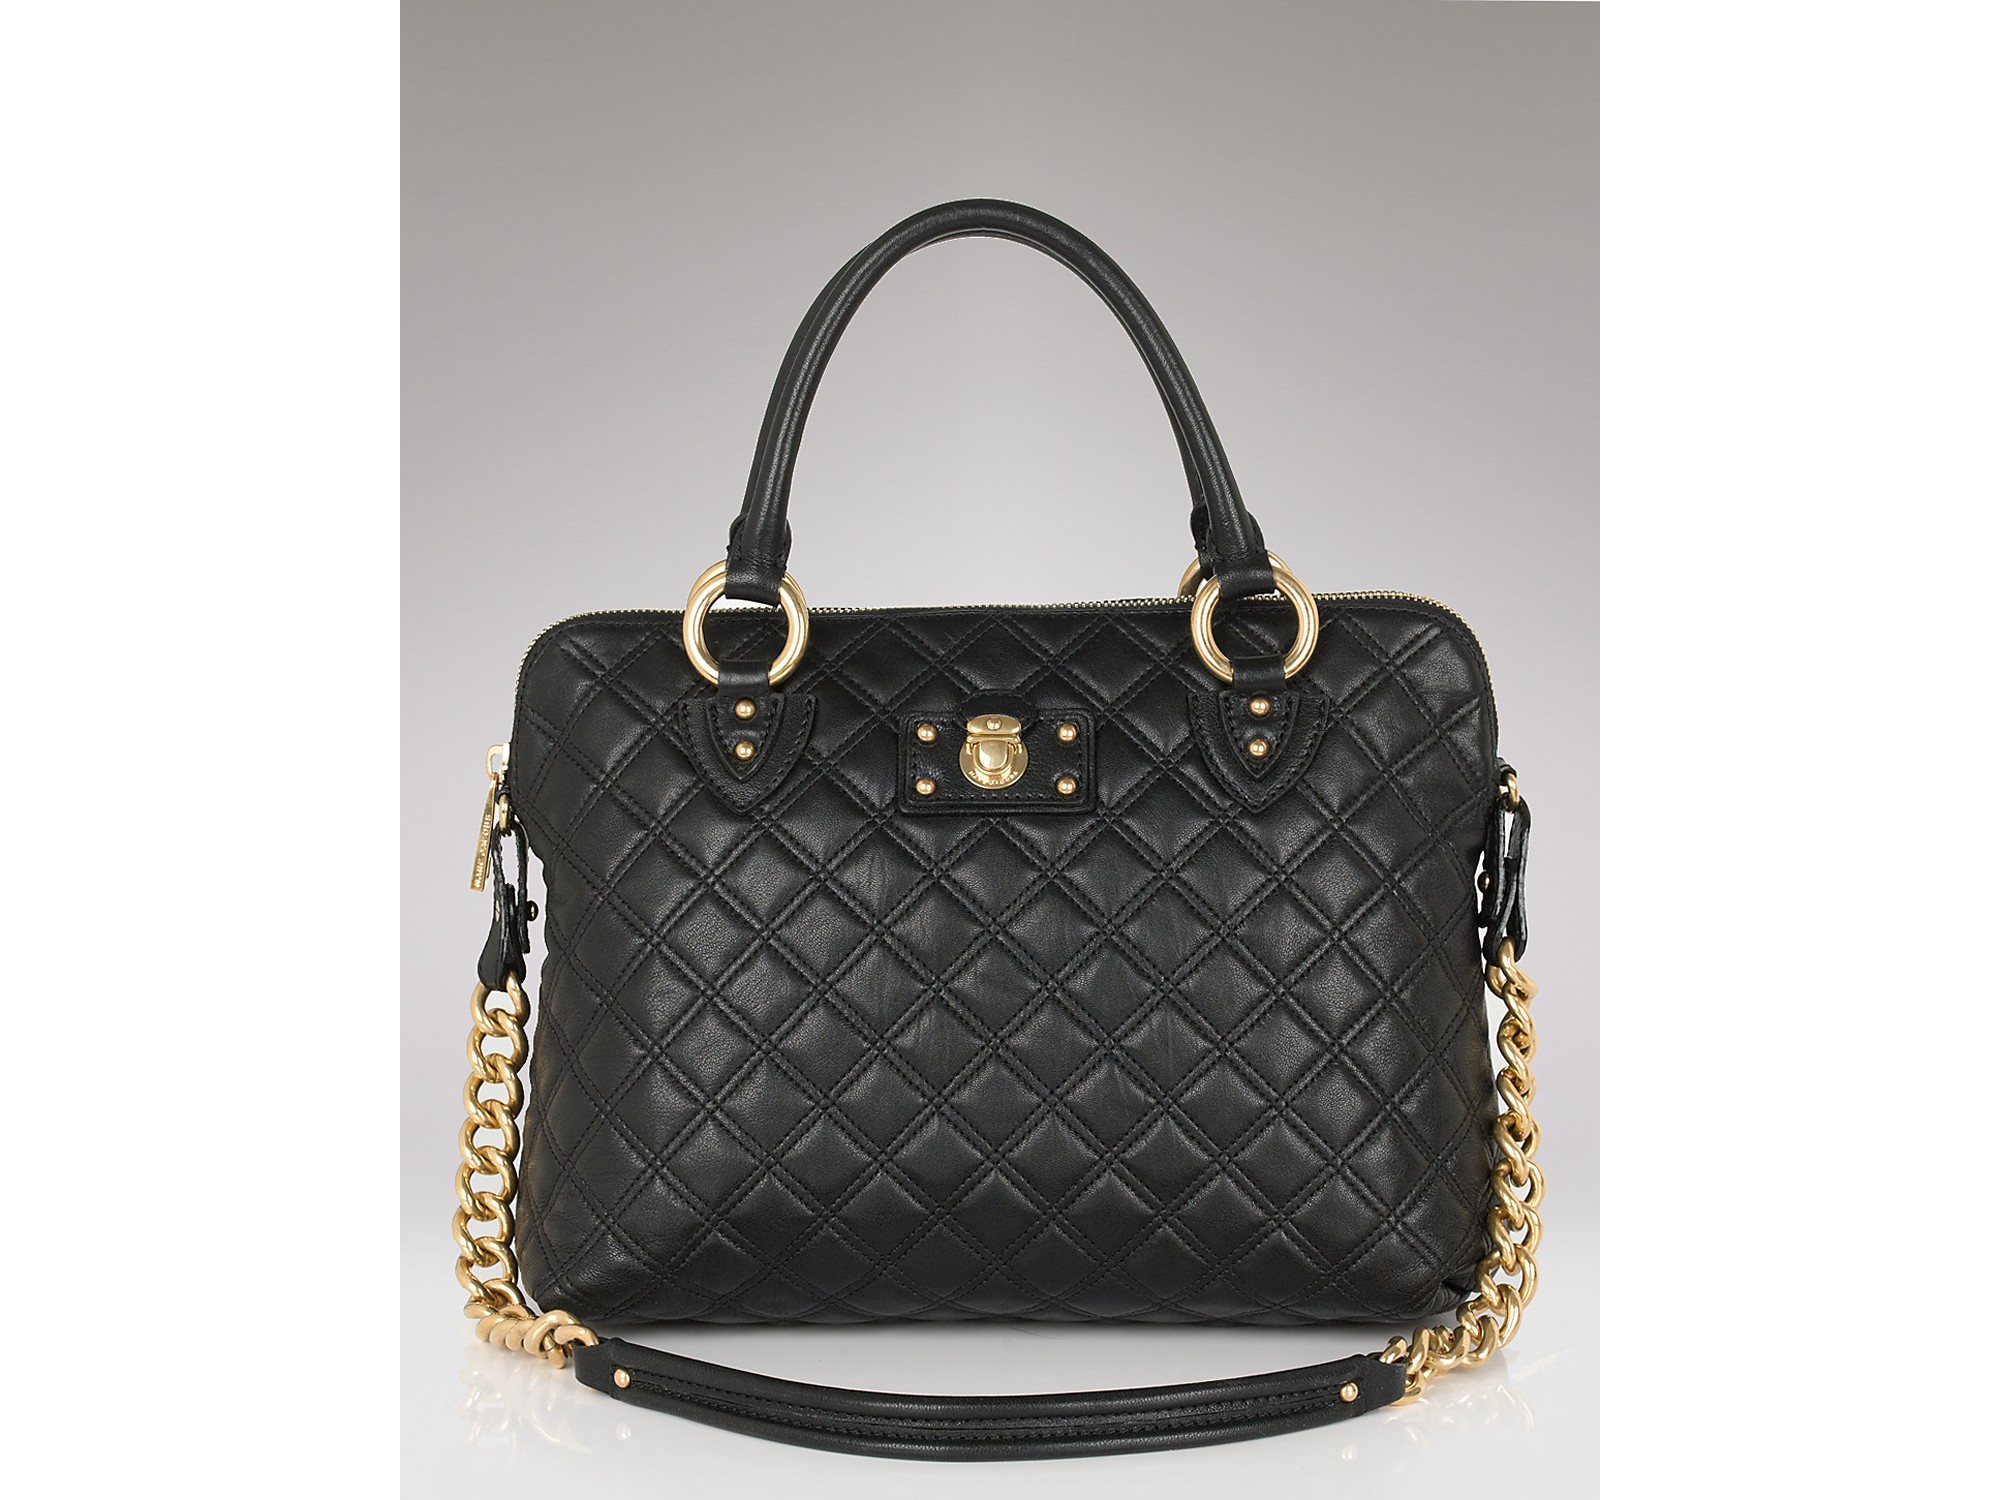 Marc jacobs The Standard Quilted Leather Satchel in Black | Lyst : marc jacobs quilted satchel - Adamdwight.com